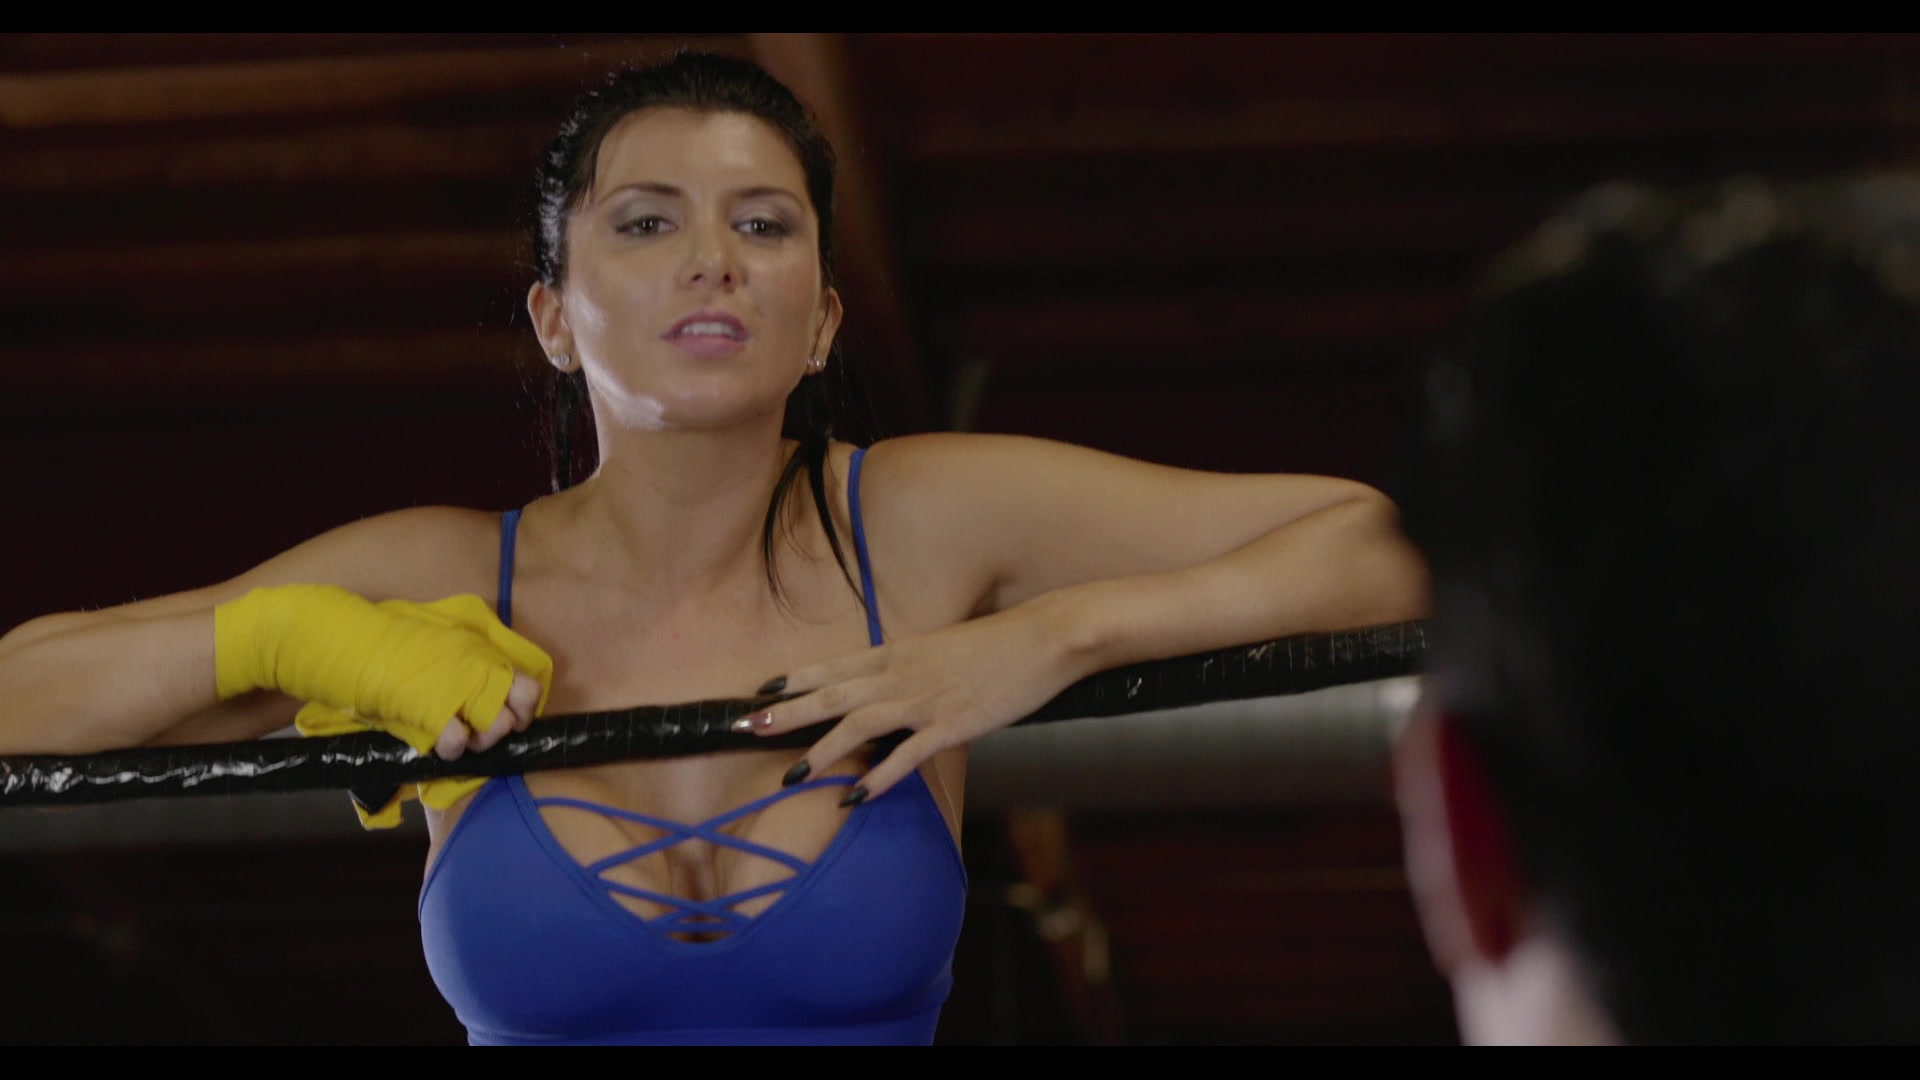 Scene with Xander Corvus and Romi Rain - image 4 out of 20